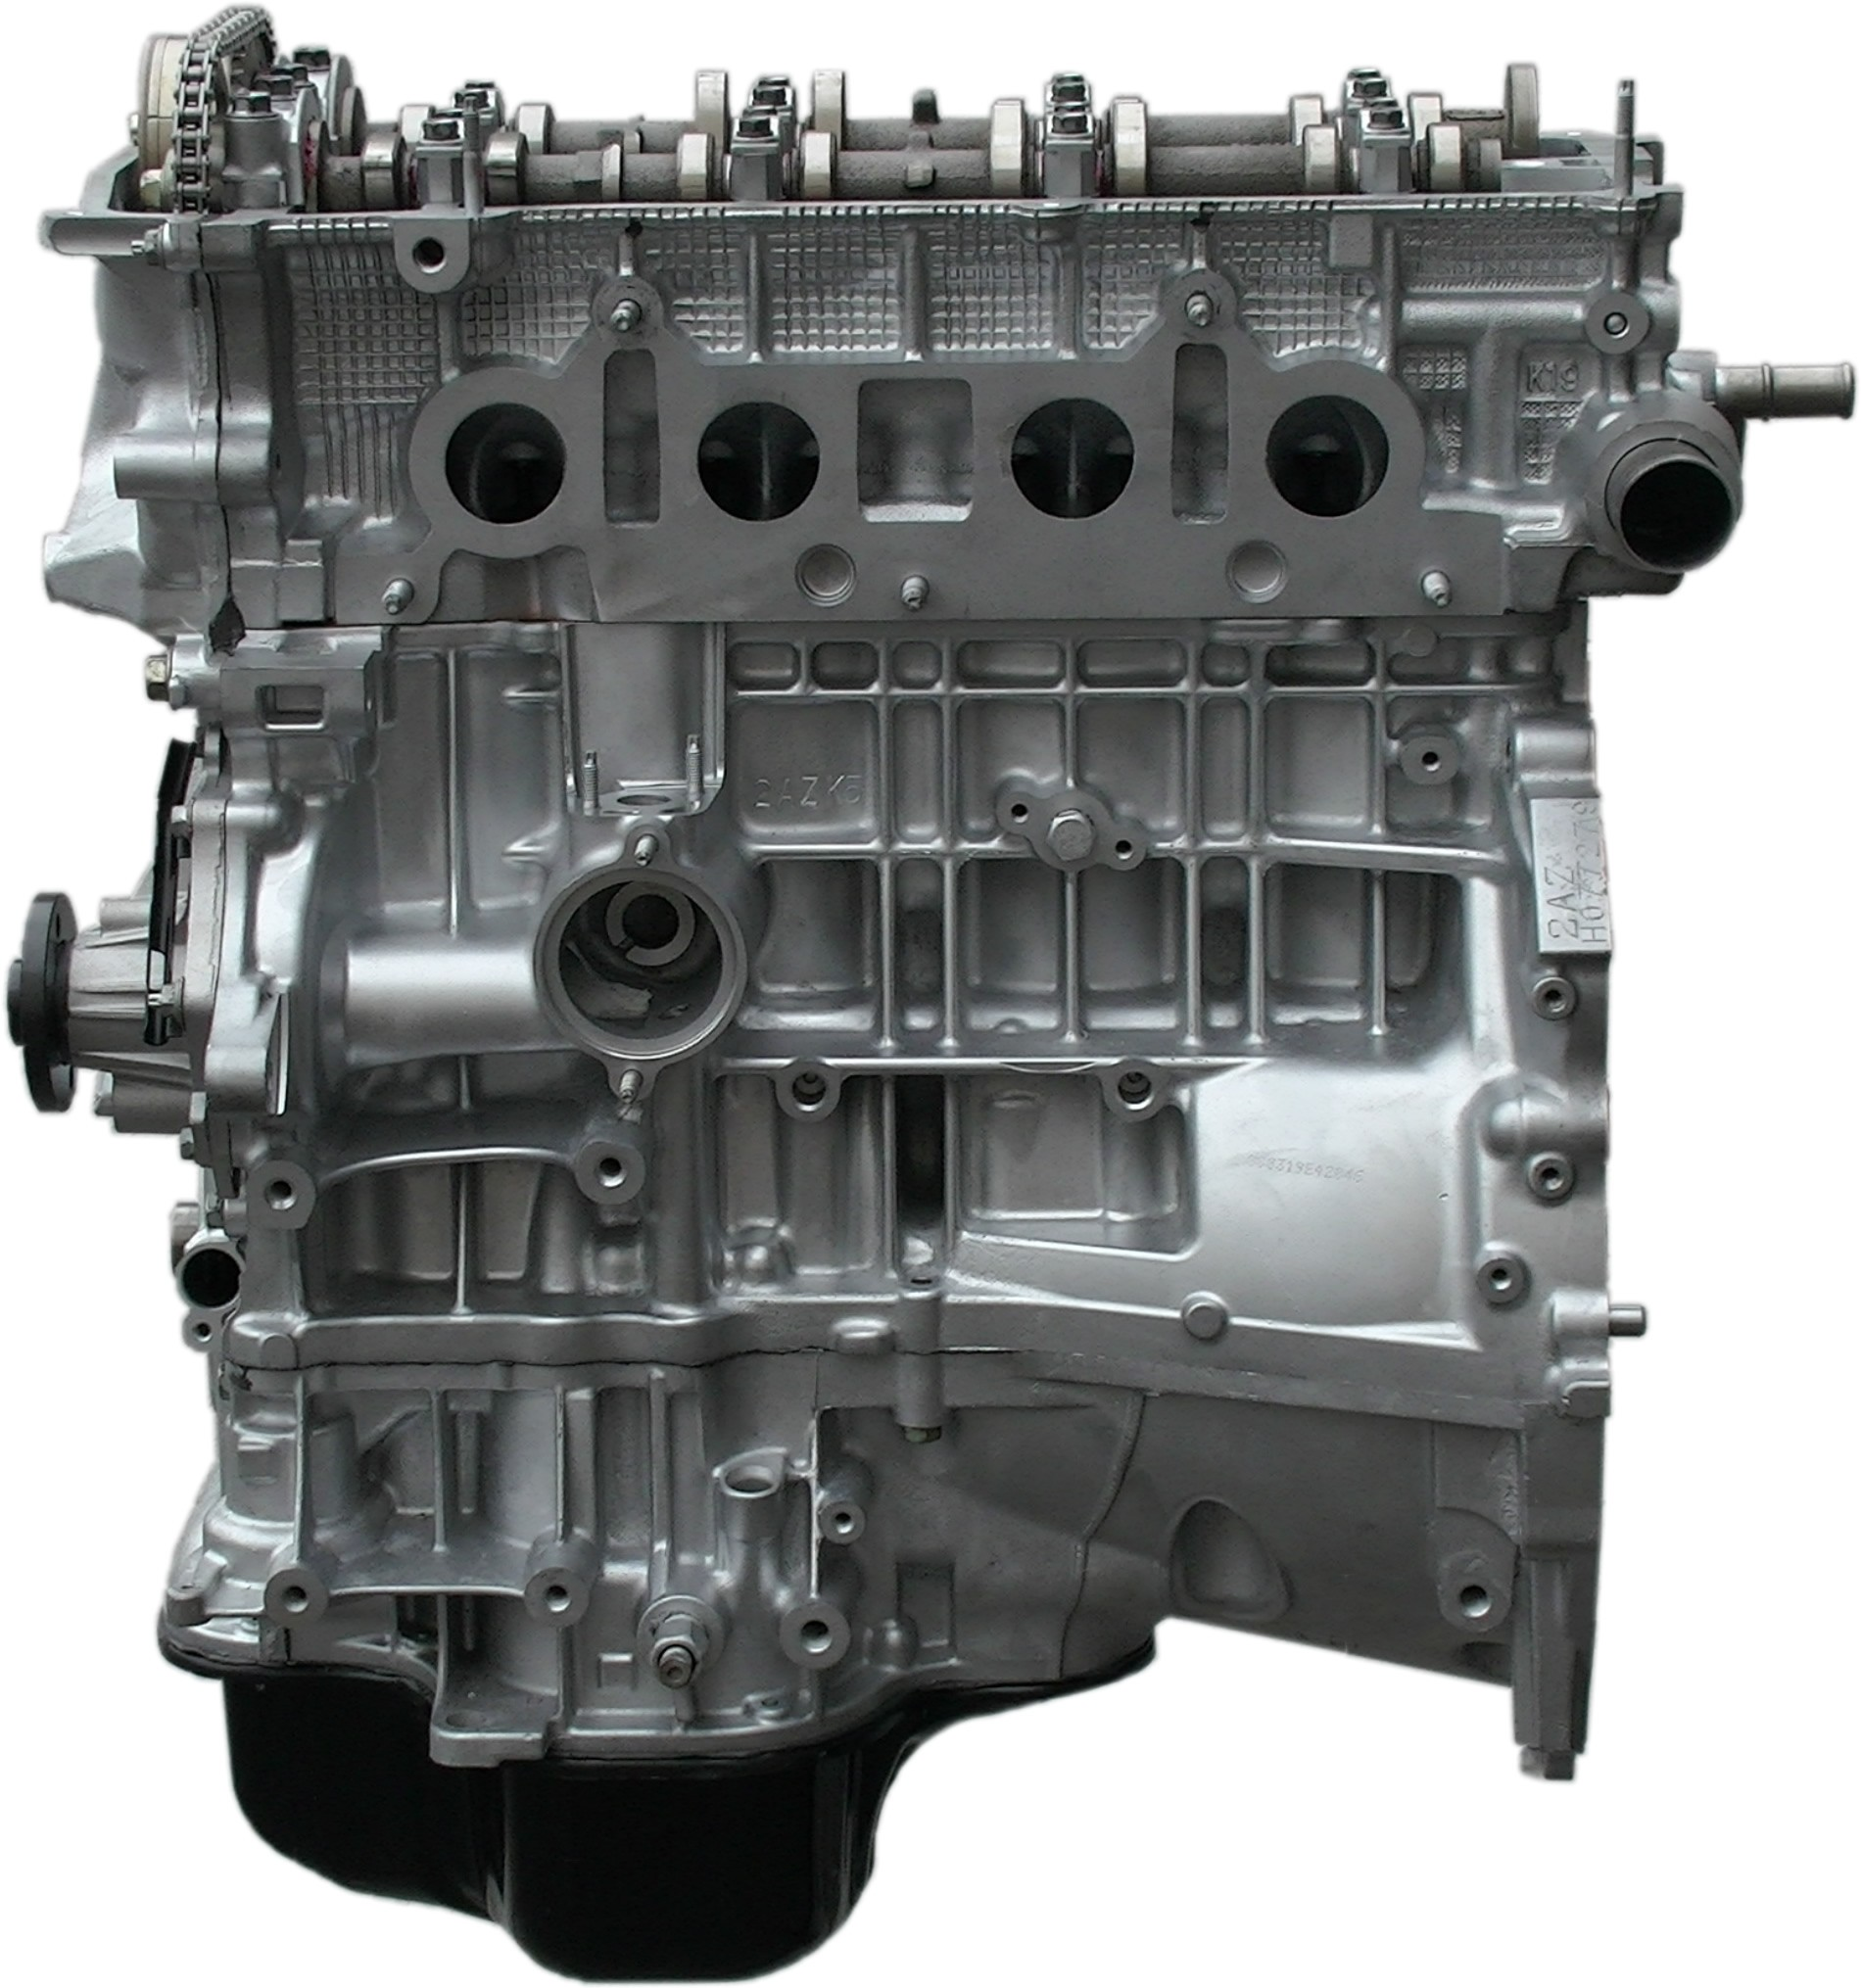 Rebuilt 05-07 Scion TC 4cyl 2.4L 2AZFE Longblock Engine ...